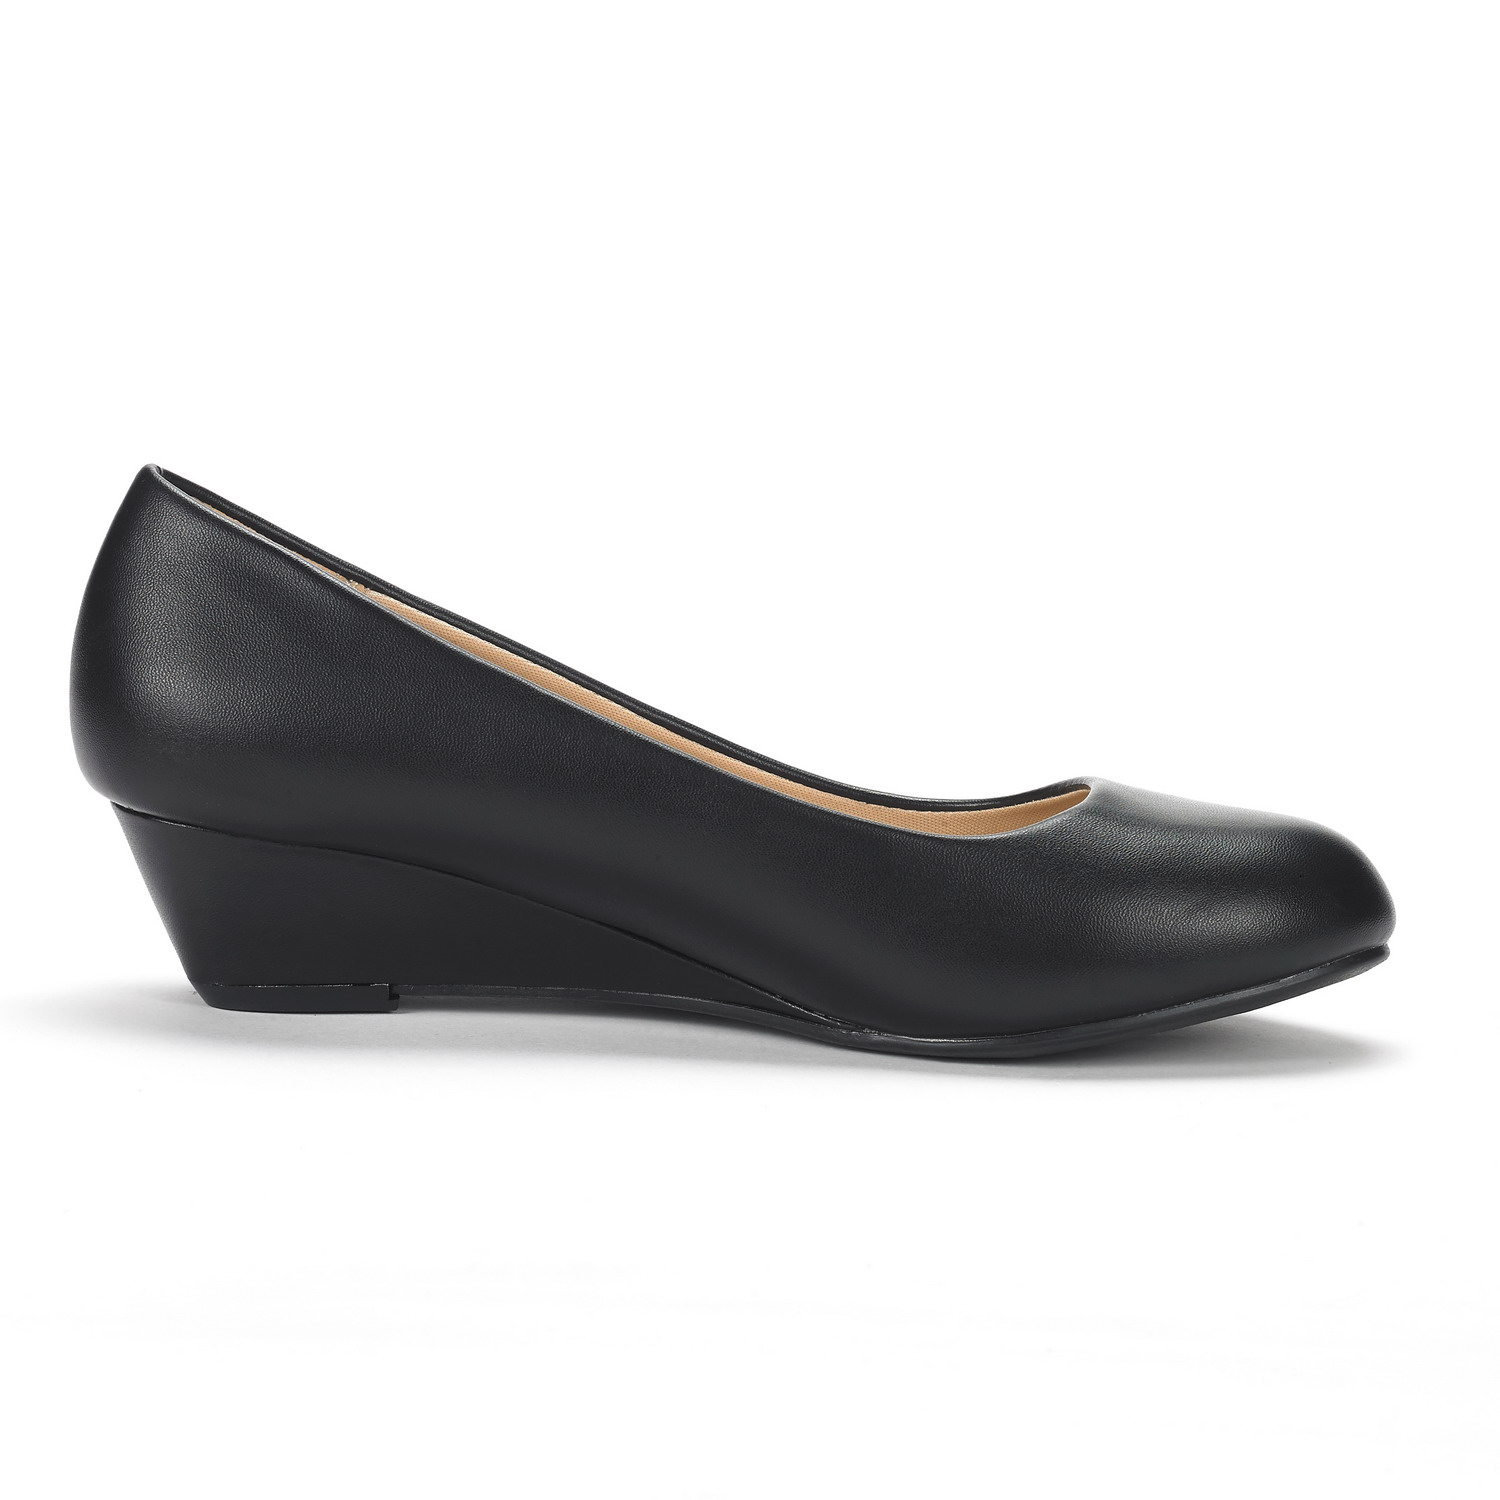 DREAM-PAIRS-Women-039-s-Mid-Wedge-Heel-Shoes-Slip-On-Comfort-Dress-Shoes-Suede-PU thumbnail 41